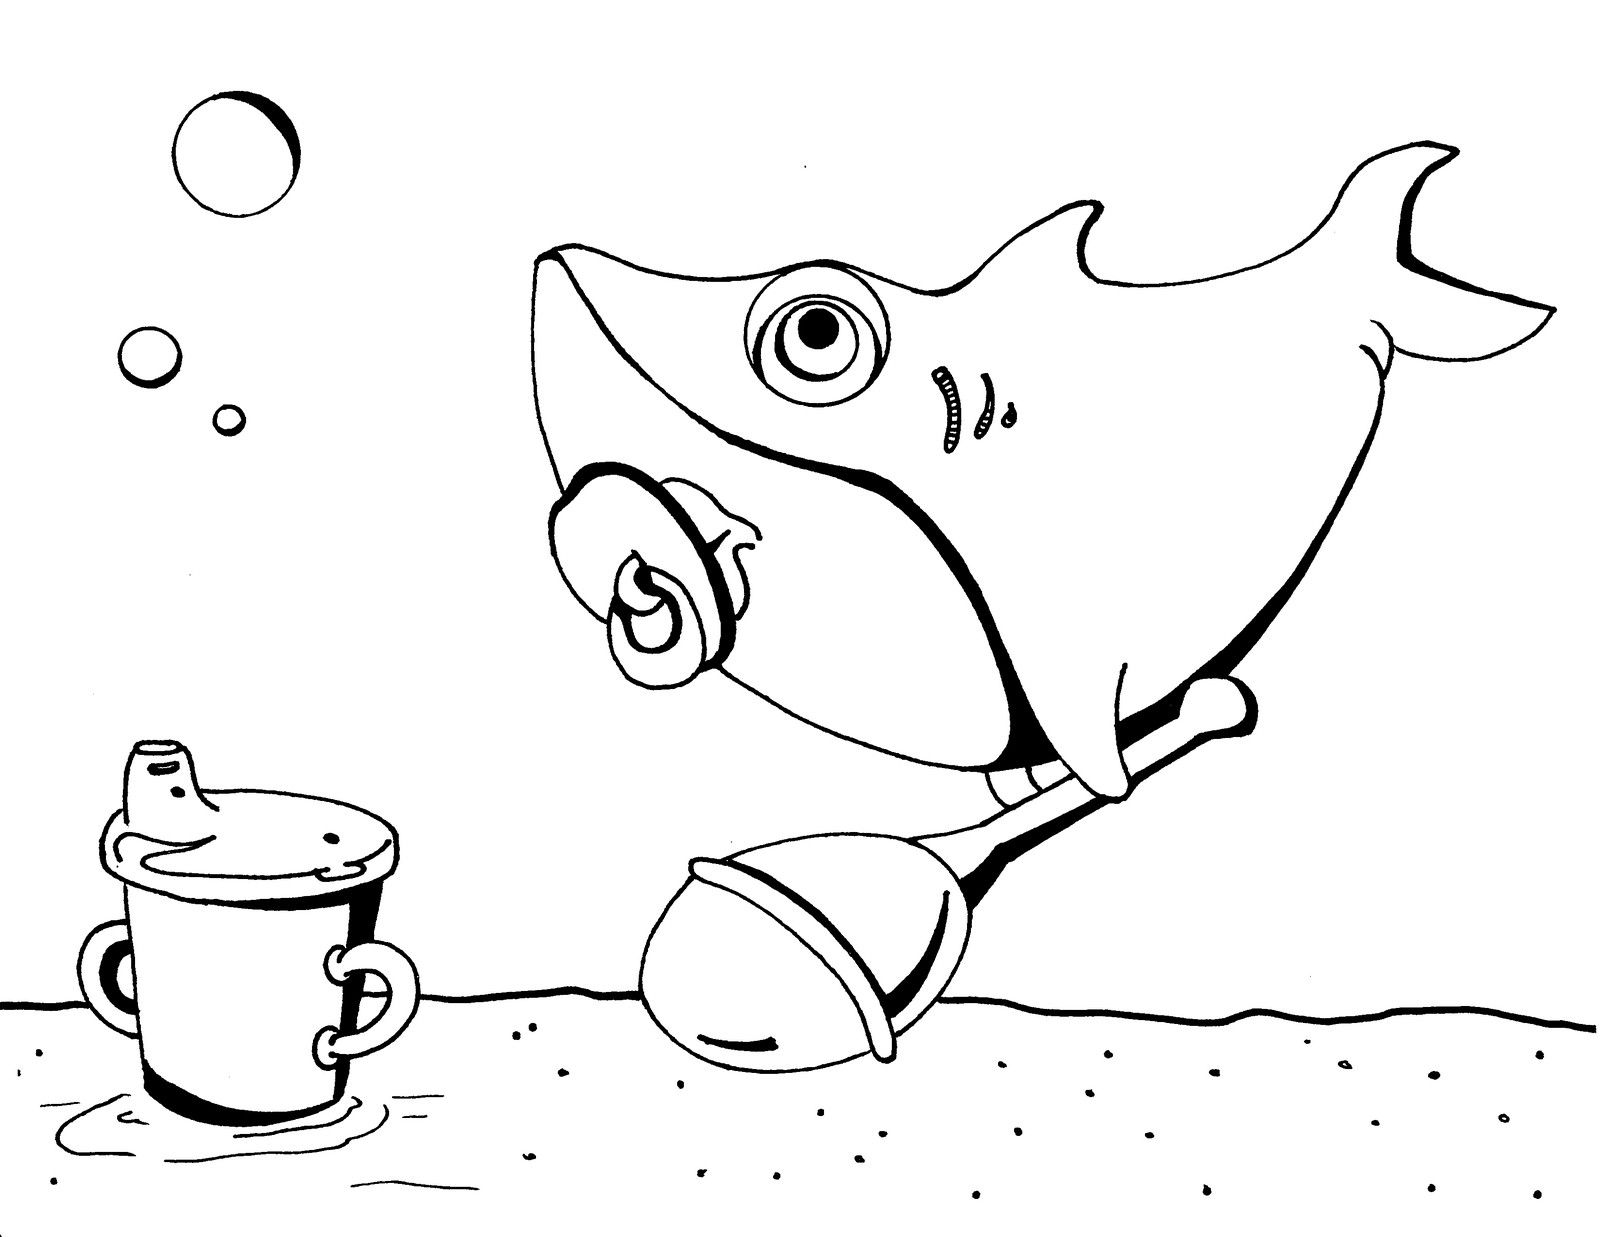 Baby Shark Pinkfong Coloring Pages is the first book to take fans behind  the scenes of the groundbrea… | Shark coloring pages, Coloring pages,  Animal coloring pages